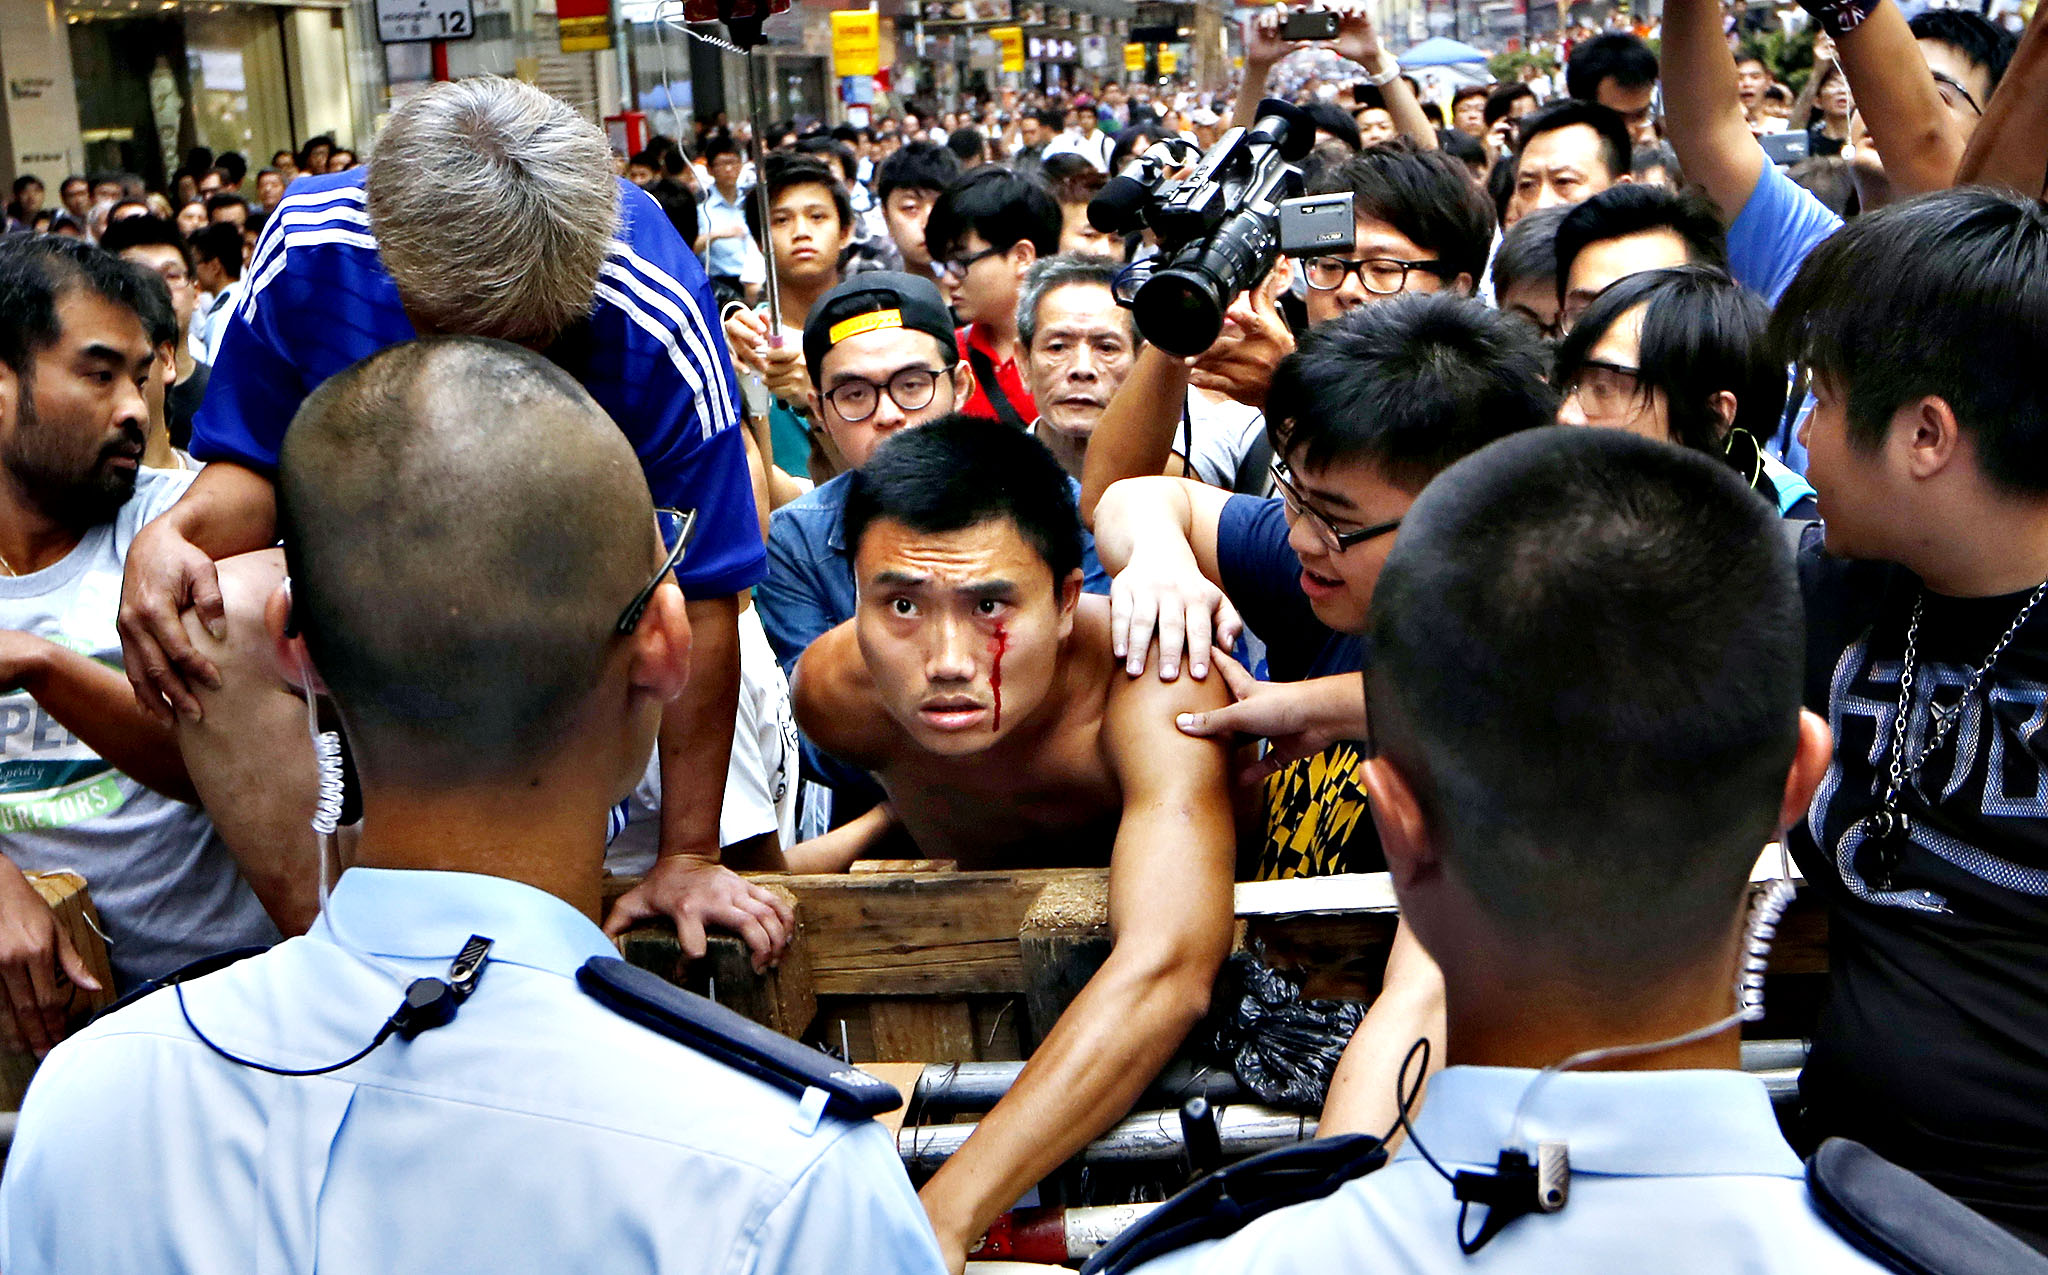 A protester bleeds from his face as he tries to stop a group of anti-occupied taxi drivers trying to remove the barricades which block off main roads, near the line of riot police at the occupied area, in the Mong Kok district of Hong Kong, Wednesday, Oct. 22, 2014. On one side of the table sat the idealistic and earnest young students in jeans and black T-shirts, knapsacks by their sides. Facing them was the line-up of seasoned government officials in their formal suits.